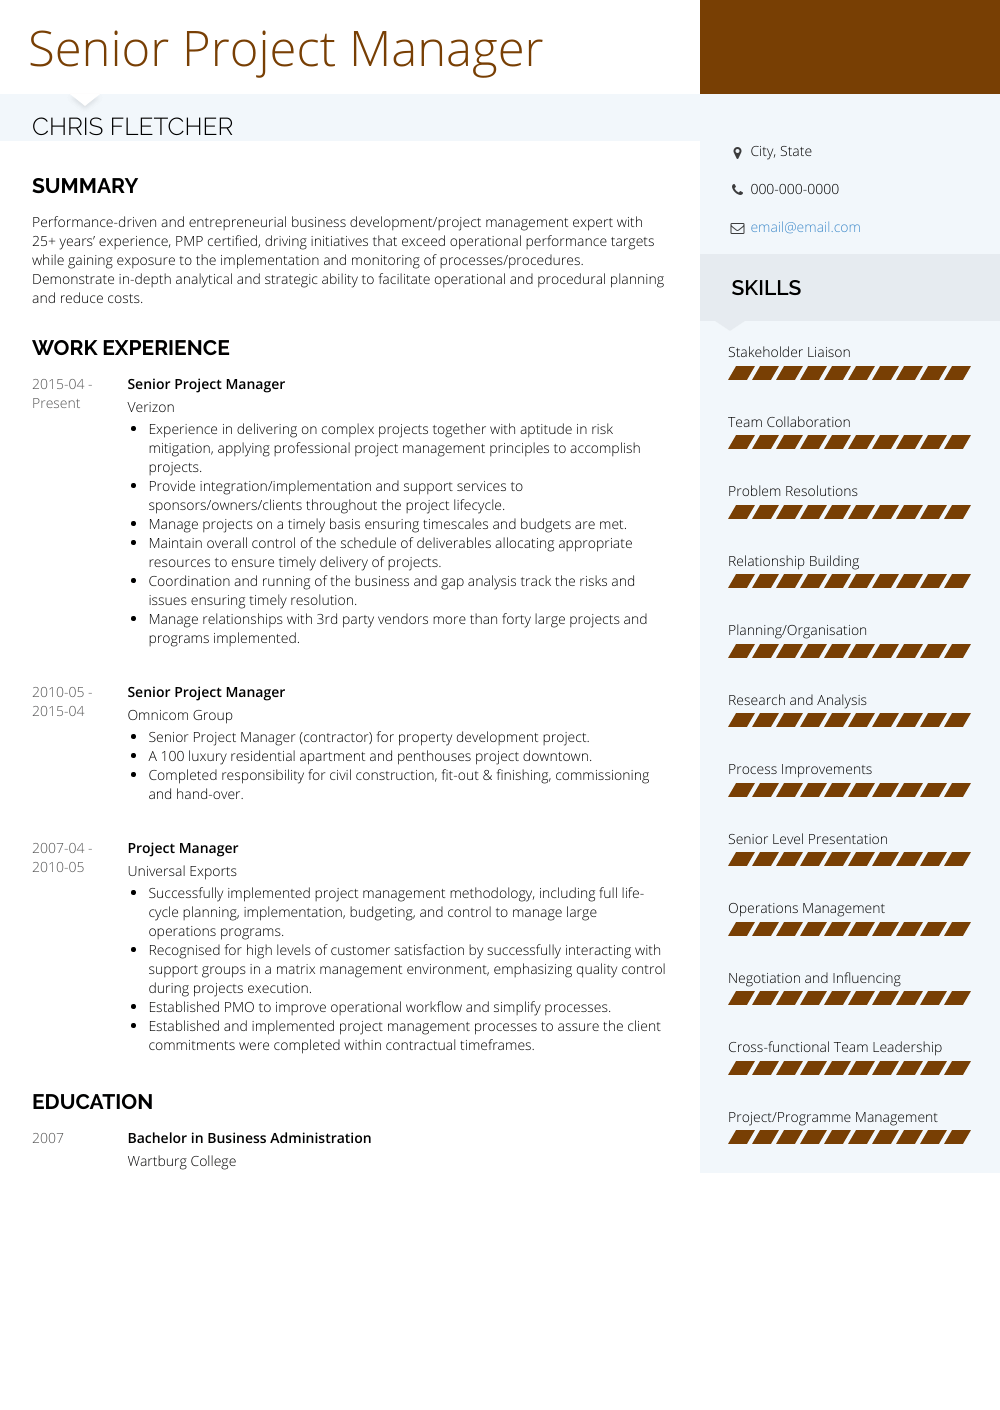 Senior Project Manager Resume Samples And Templates Visualcv